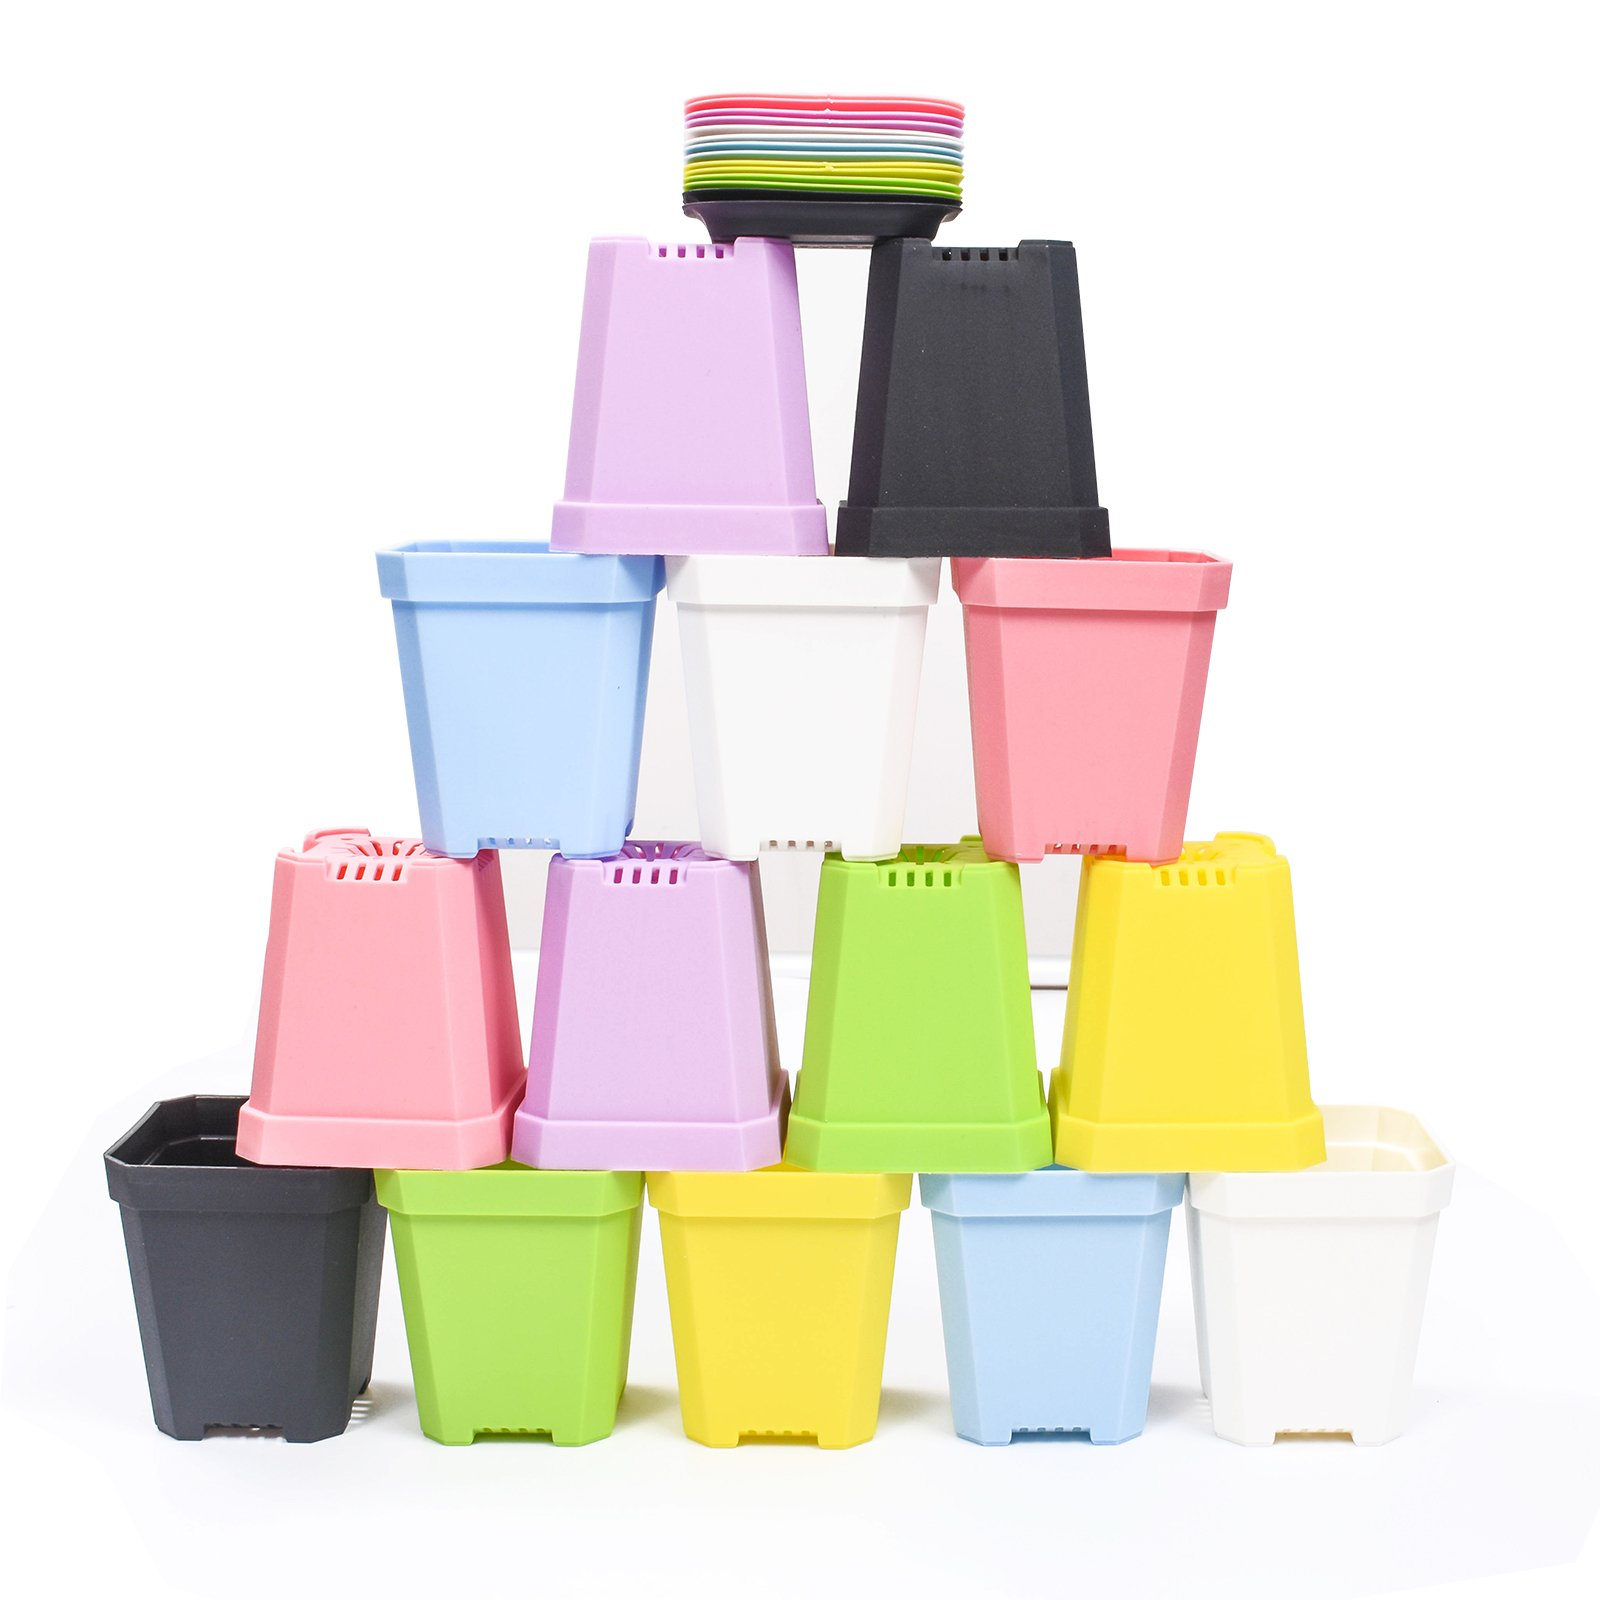 KORAM 14-pack Colorful Flower Pots 2.7-inch Square Plastic Plant Pot Succulent Planter Nursery Pots with Saucer for Home Office Garden, 1 Set of Planting Tools